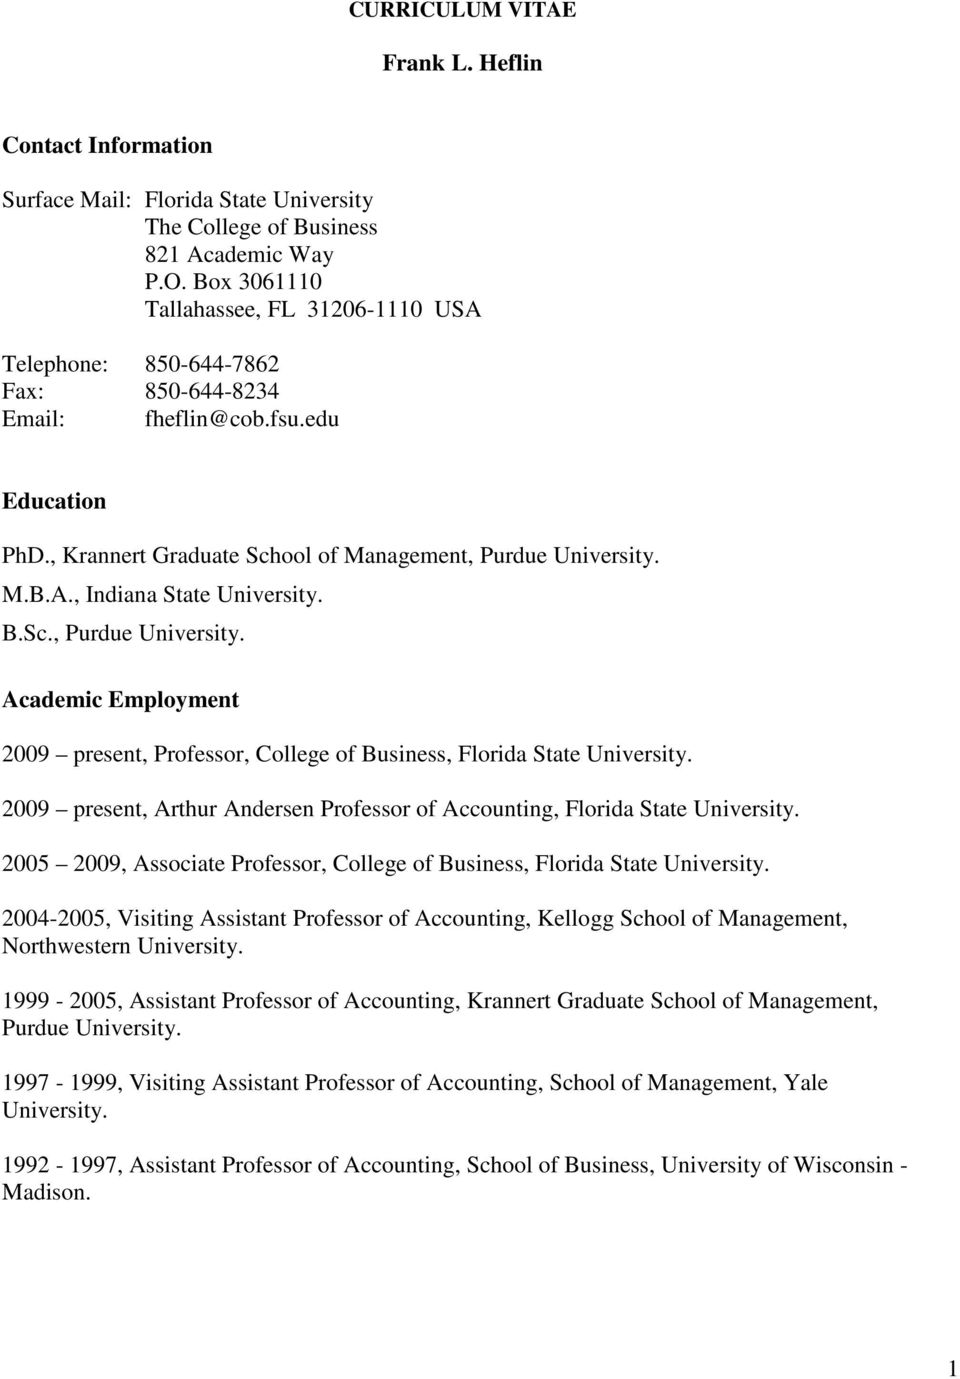 B.Sc., Purdue University. Academic Employment 2009 present, Professor, College of Business, Florida State University. 2009 present, Arthur Andersen Professor of Accounting, Florida State University.